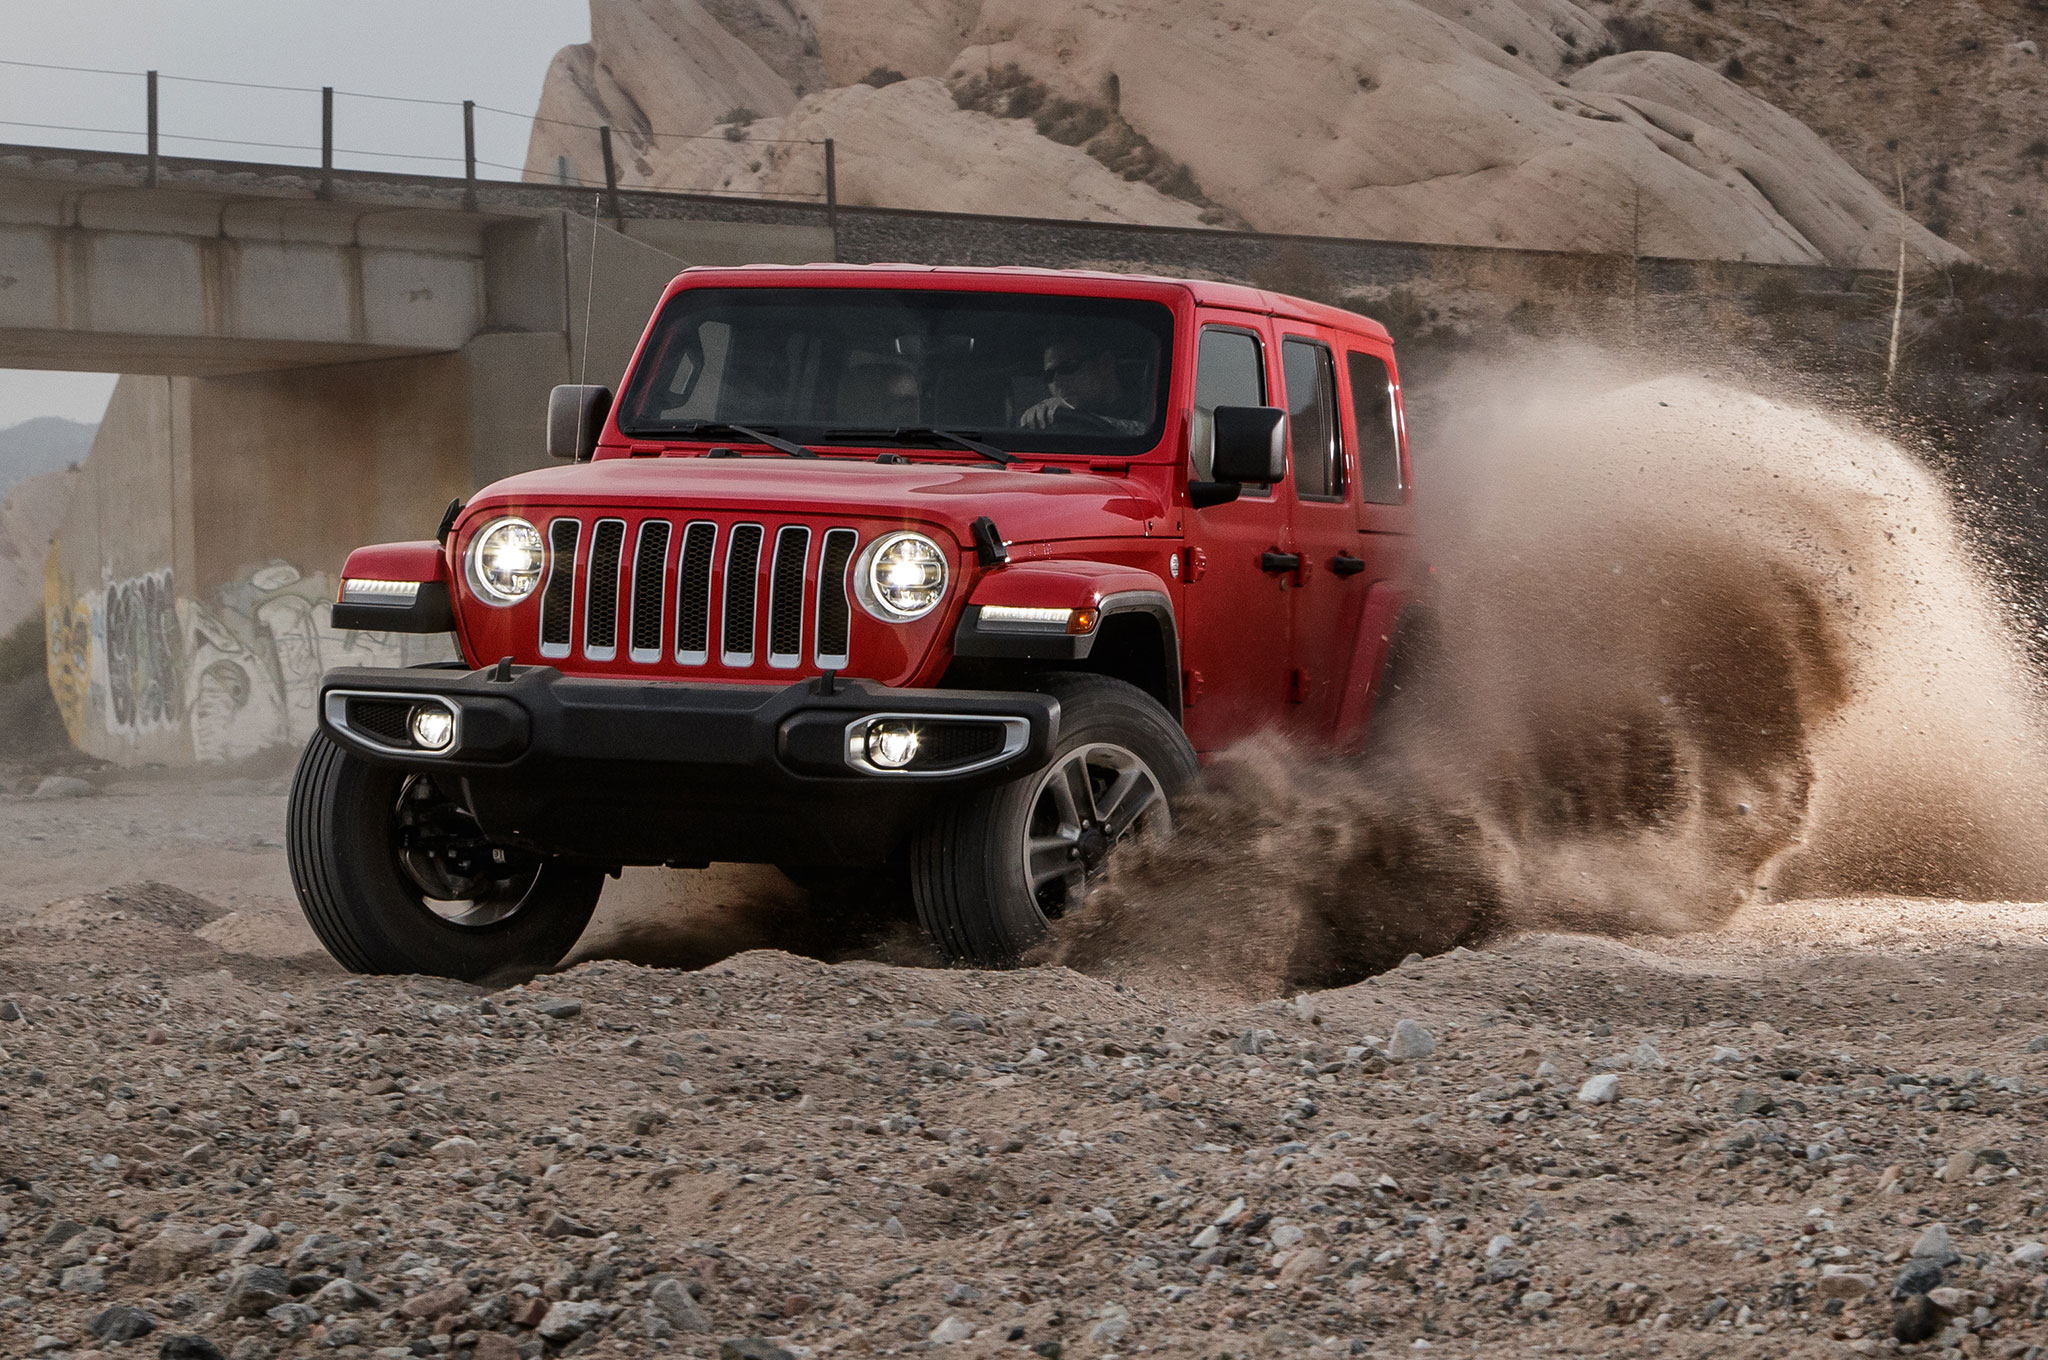 2018 Jeep Wrangler Sahara Unlimited Front View In The Dirt